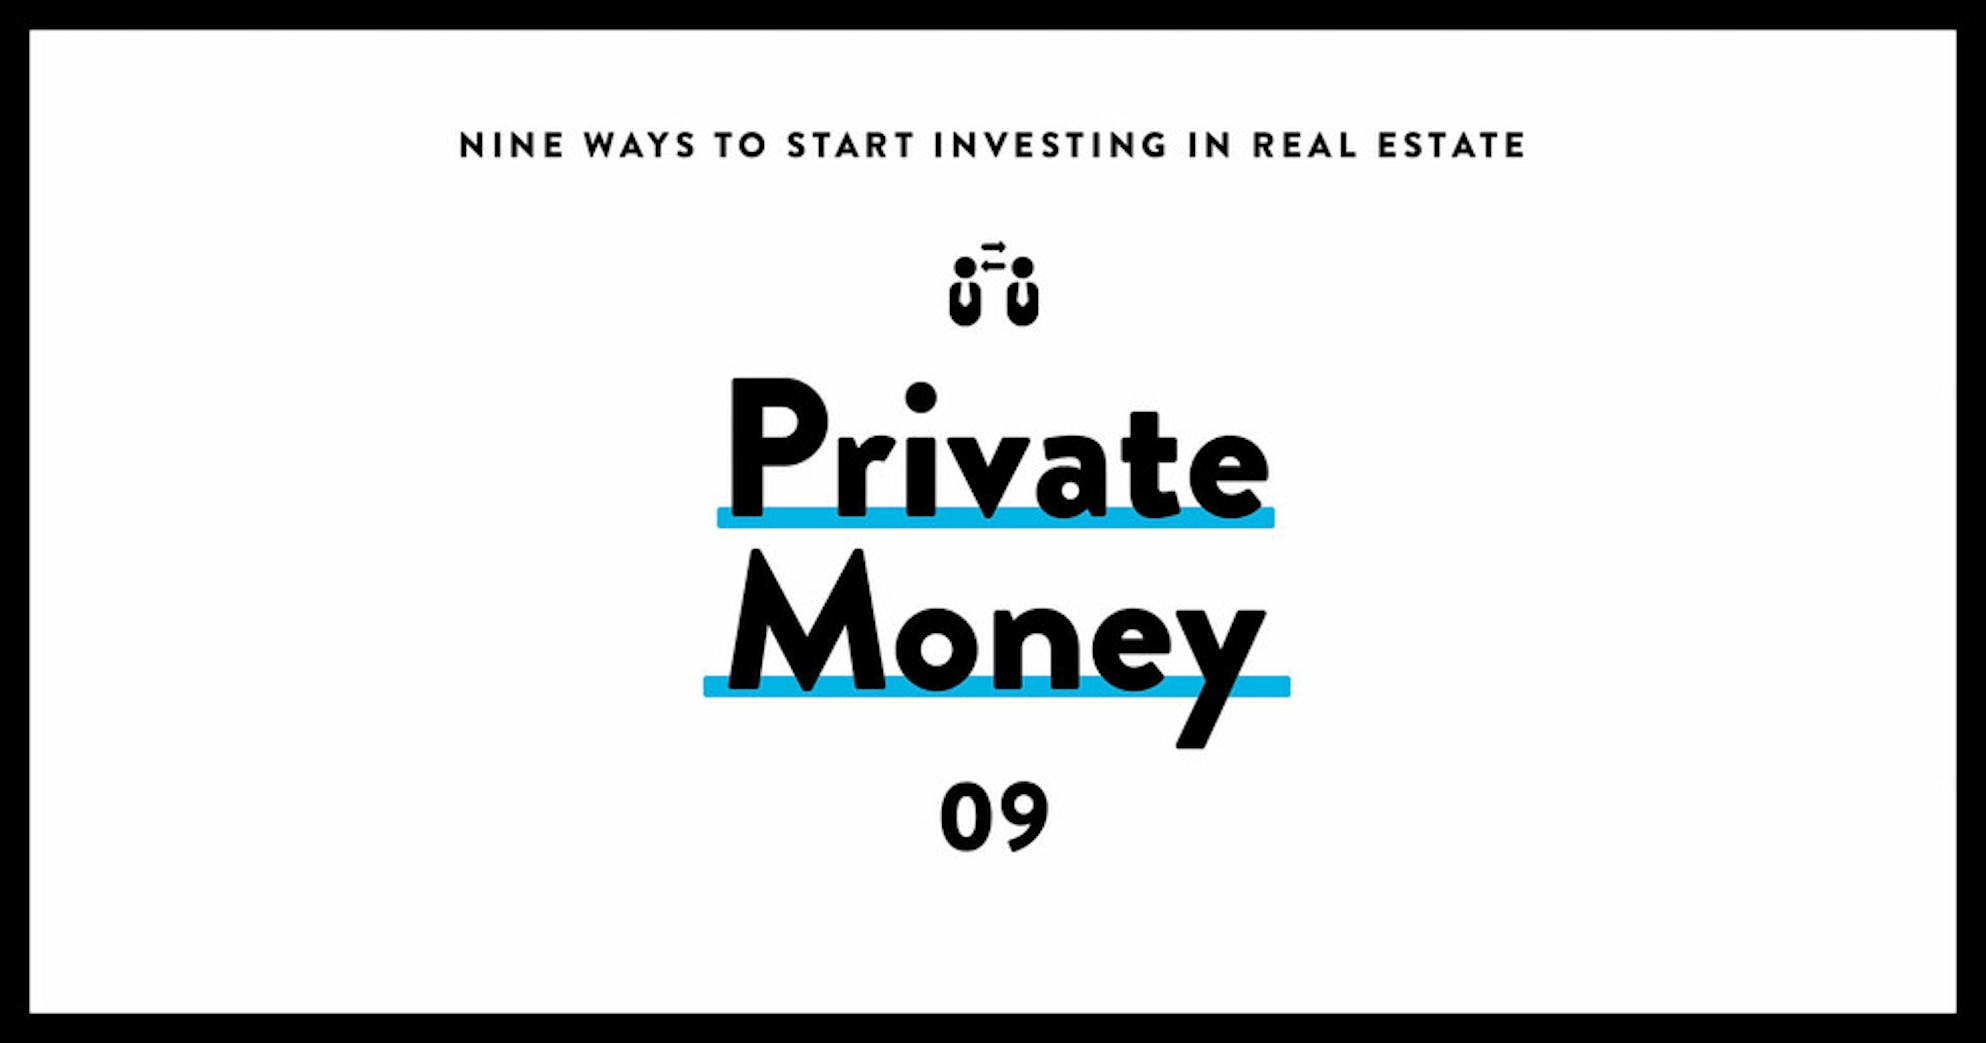 how to invest in real estate with little money 09 private money